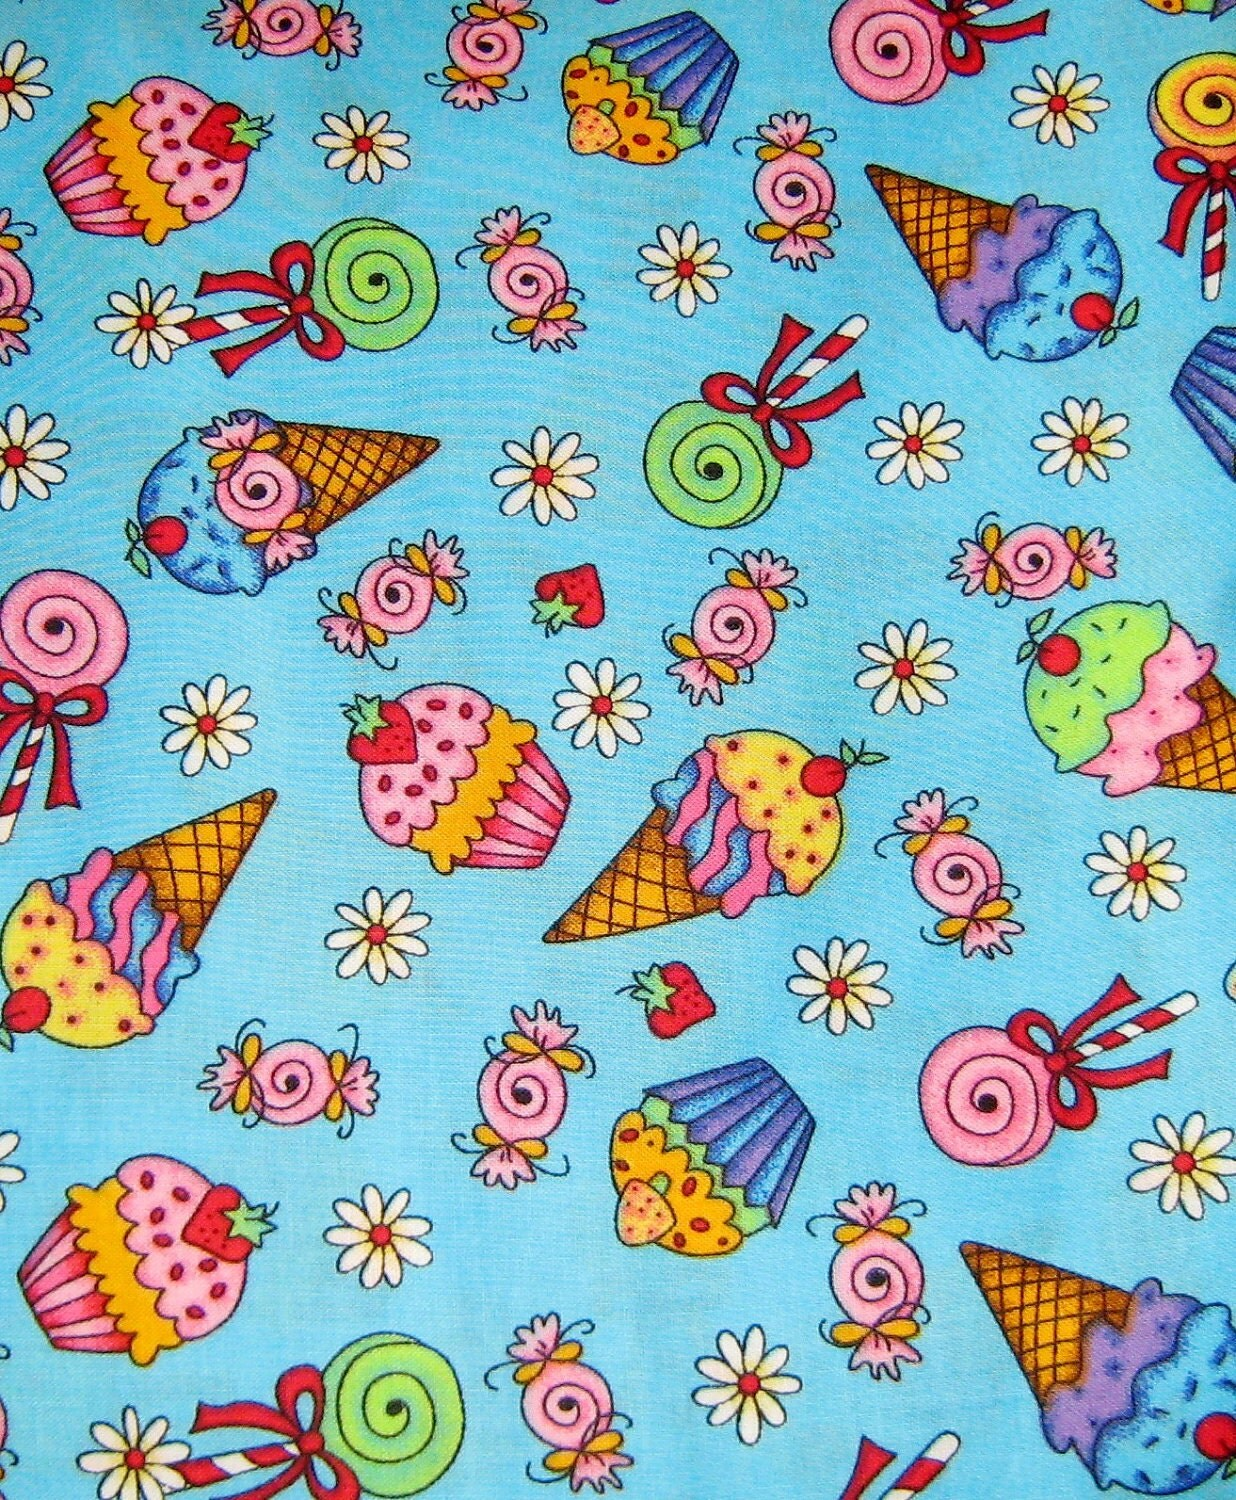 Icing On Fabric: Cupcake Candy Ice Cream Cone Japanese Cotton Fabric Last One